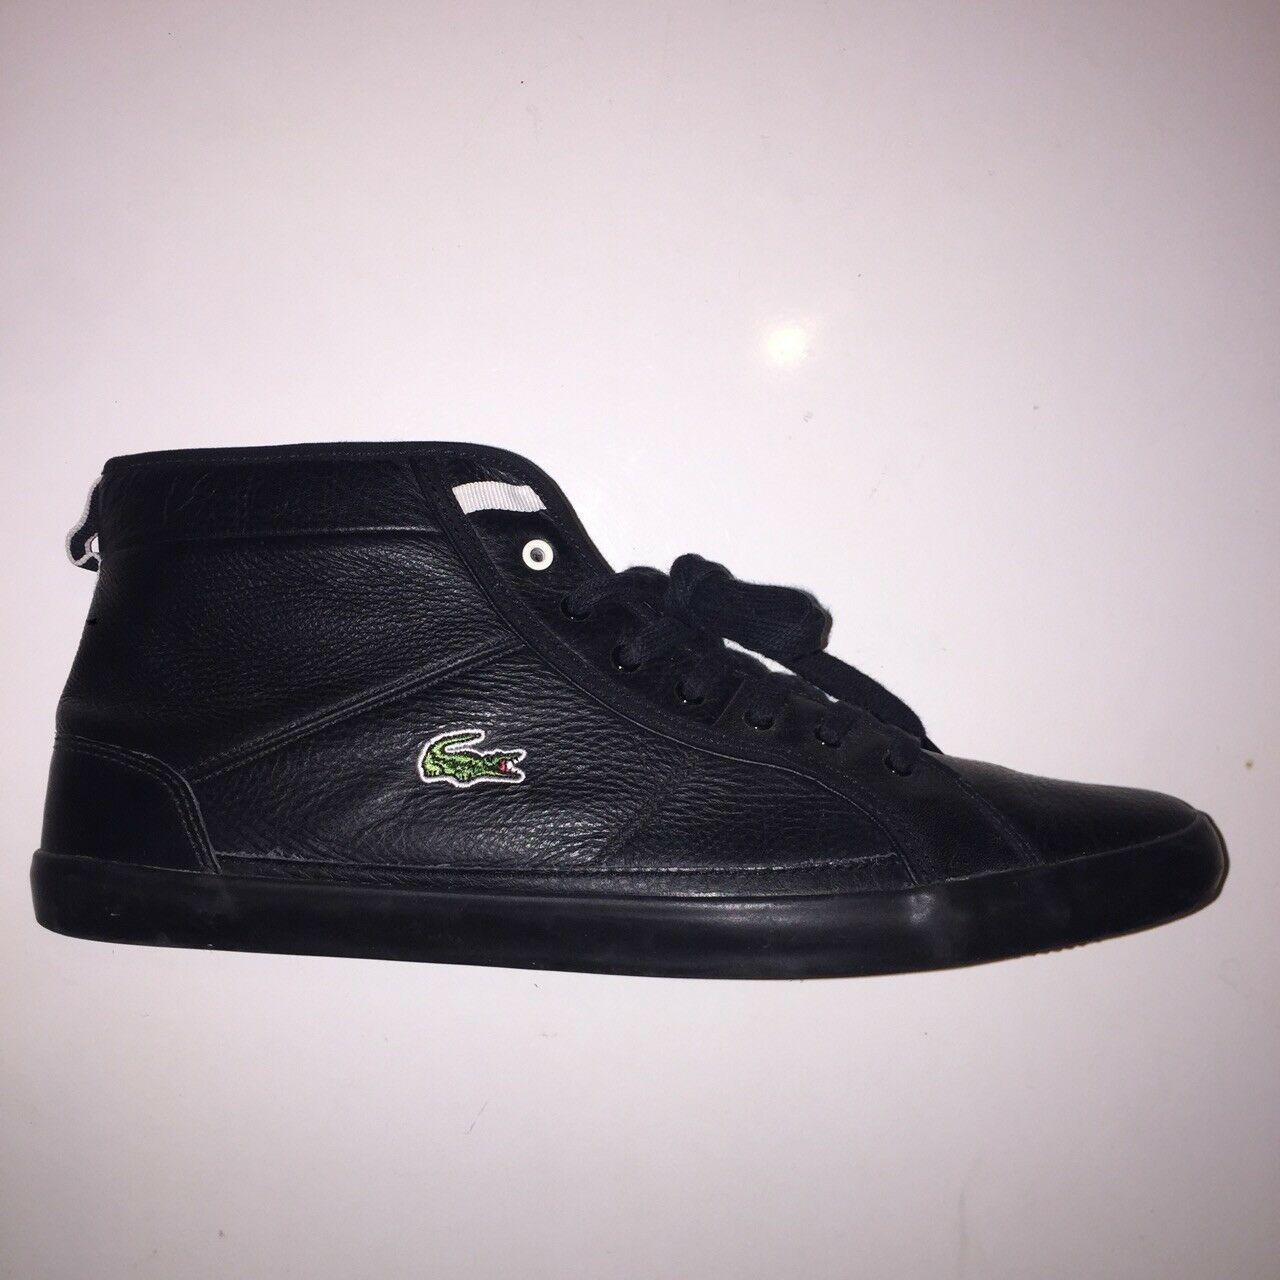 Lacoste Men's Winter Wool Spun Sneakers High Top Black Leather Trainers UK 11